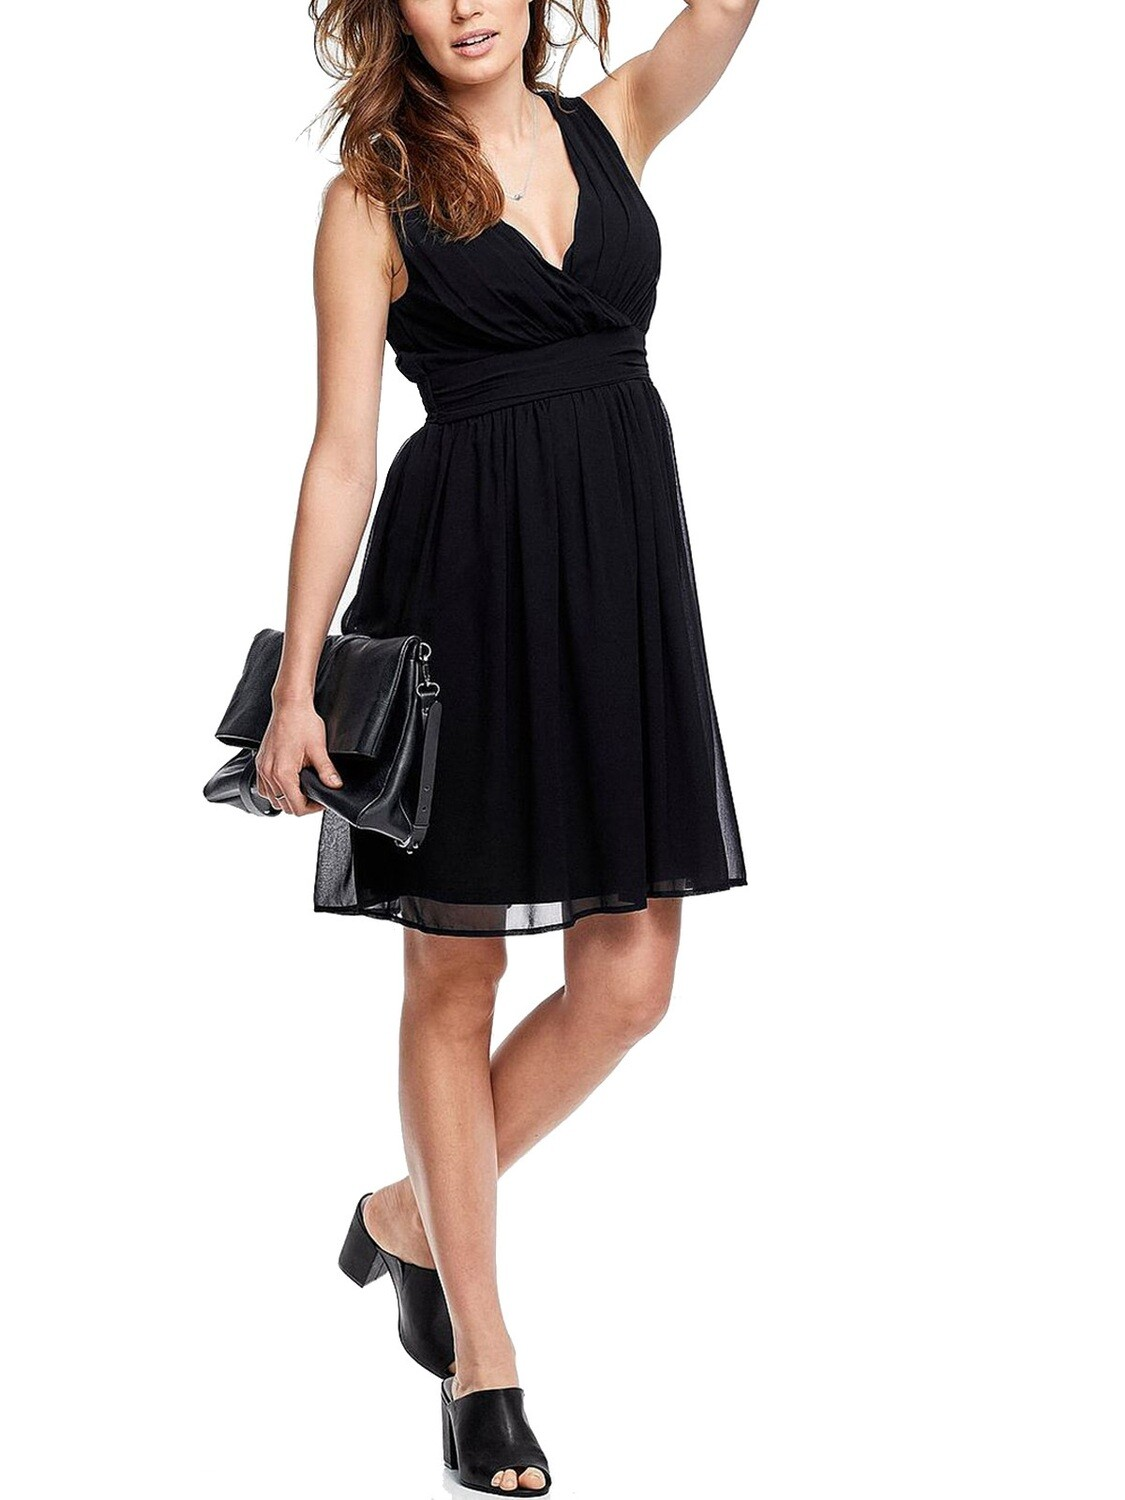 Crossover Front Sleeveless Black Dress